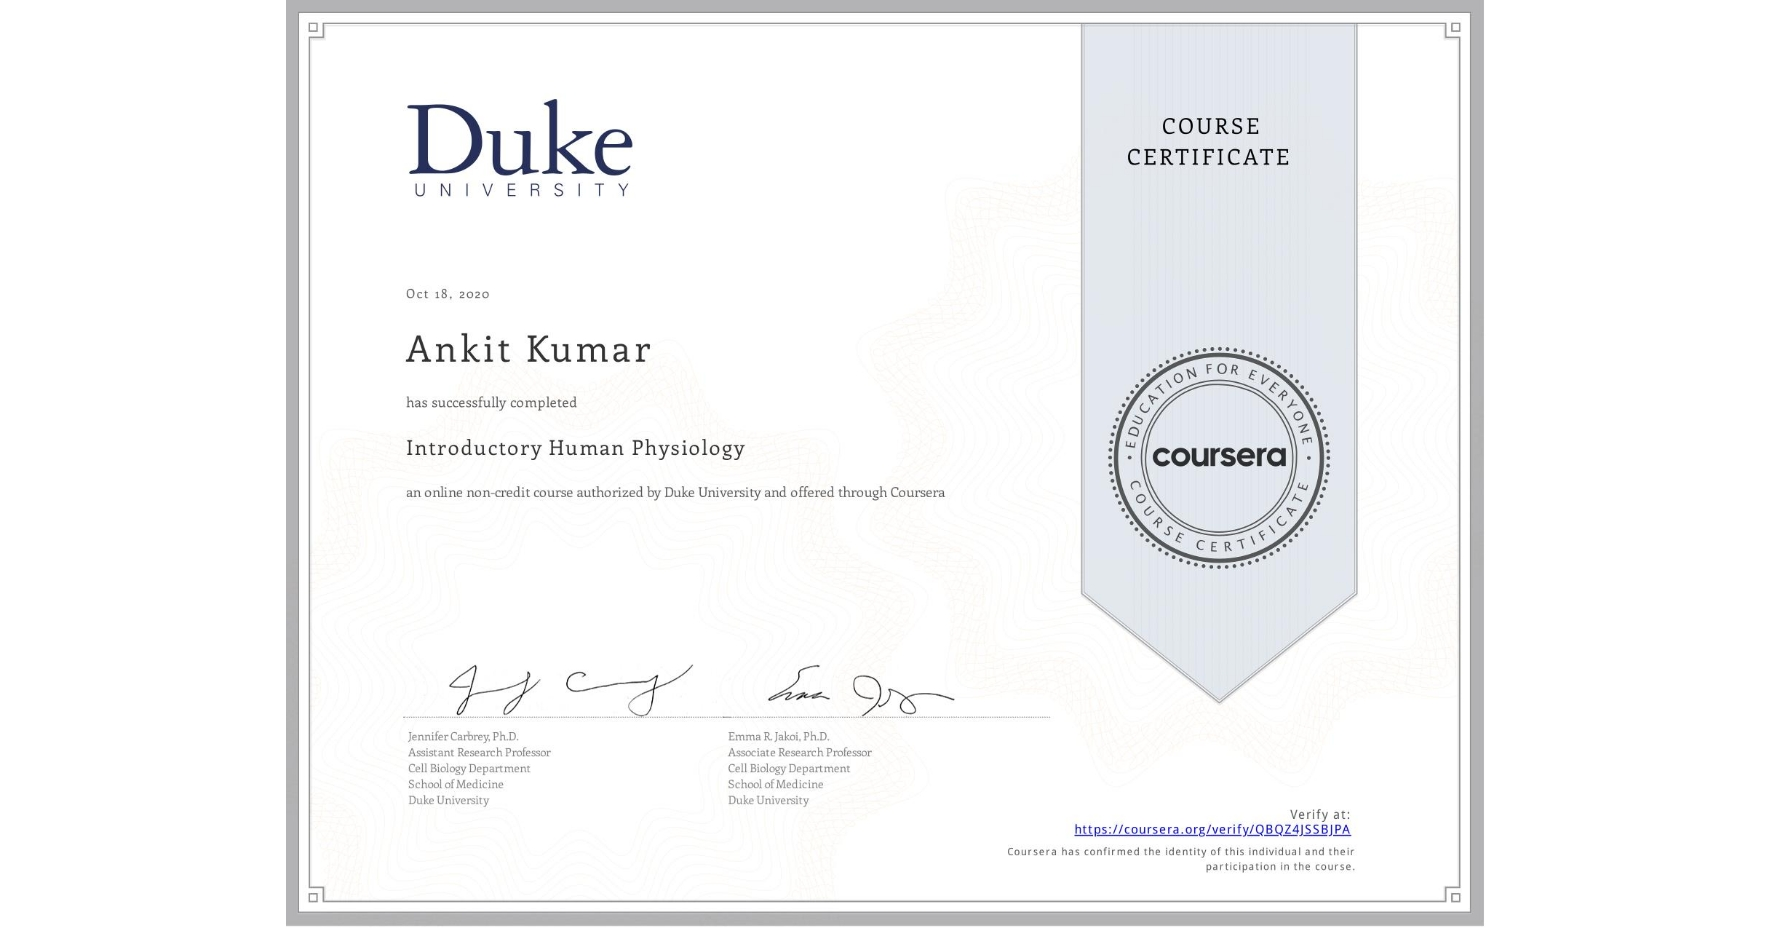 View certificate for Ankit Kumar, Introductory Human Physiology, an online non-credit course authorized by Duke University and offered through Coursera